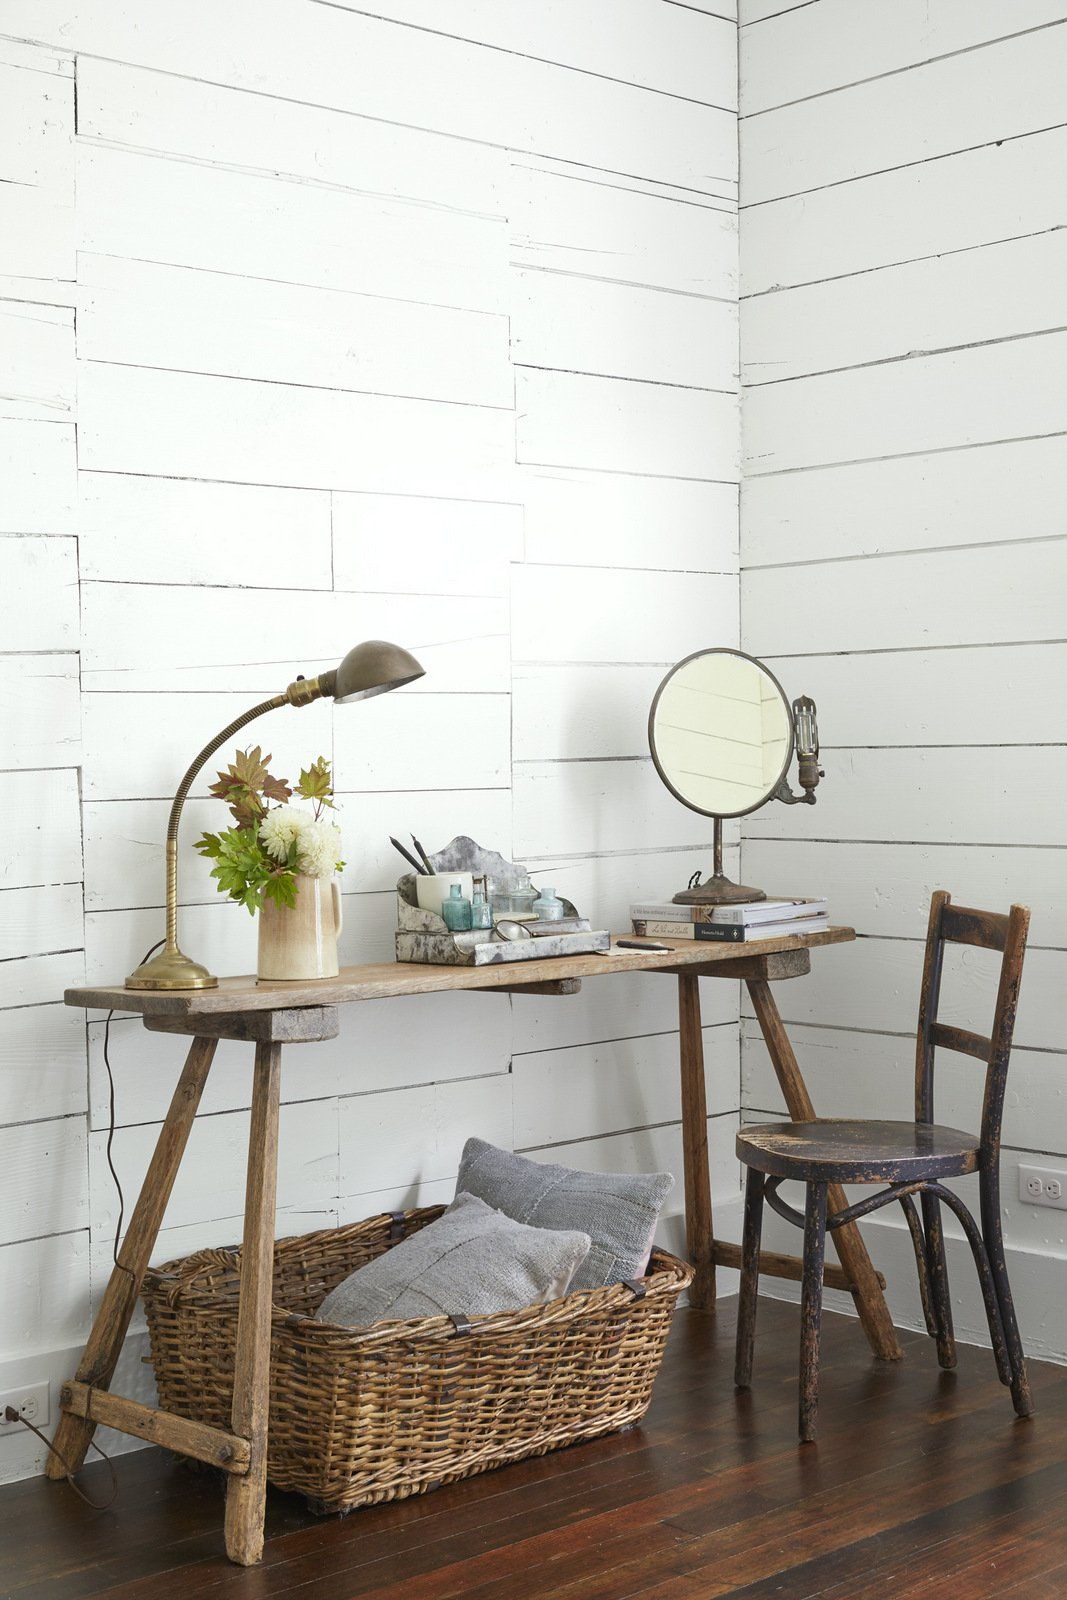 #8 Keep it Simple. - Less is more in a modern space.